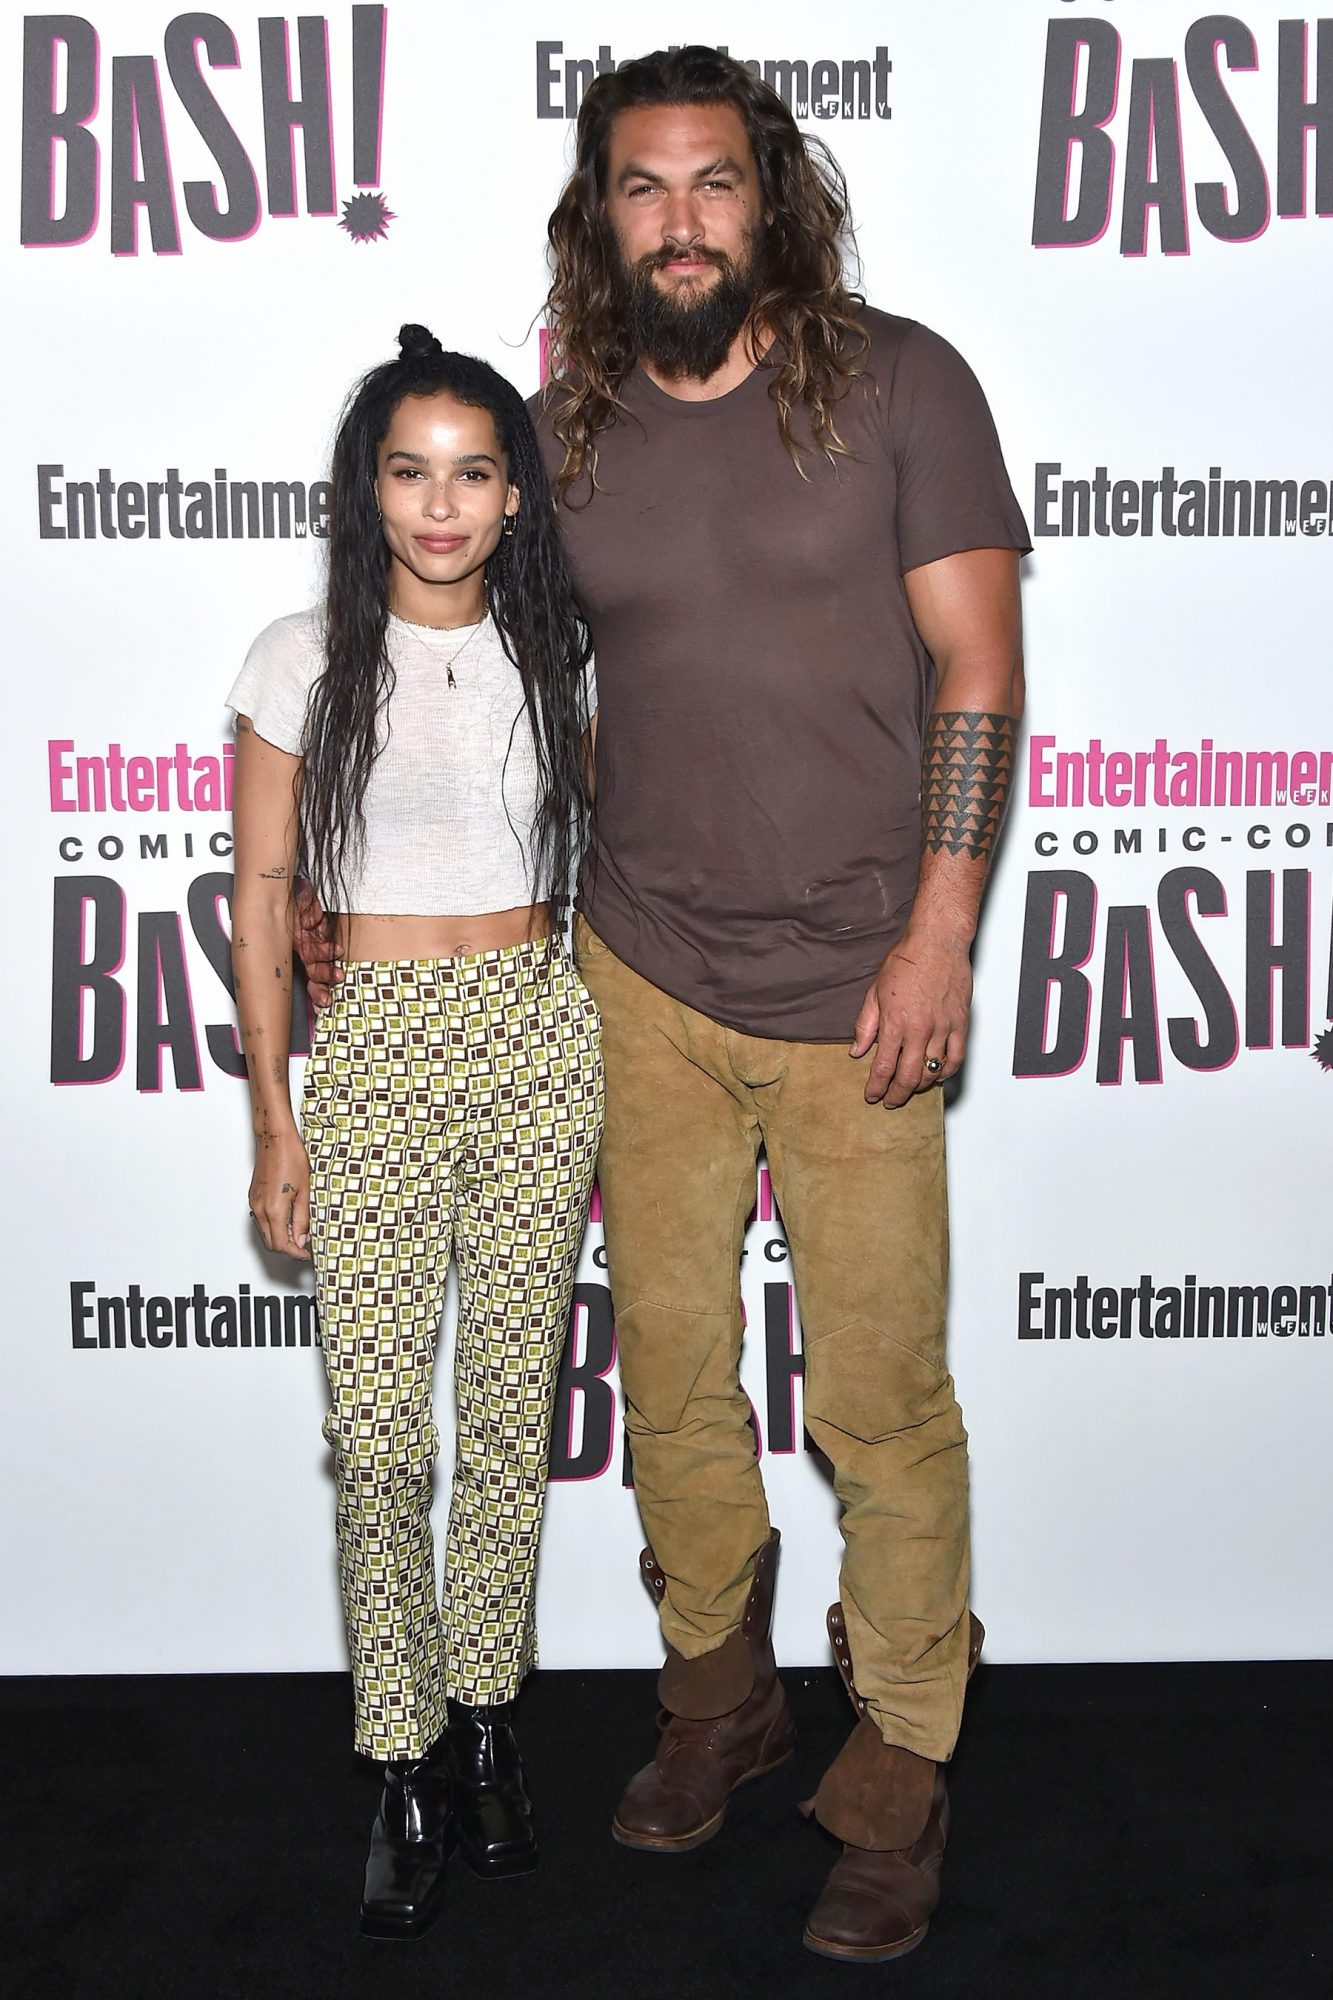 Entertainment Weekly Hosts Its Annual Comic-Con Party At FLOAT At The Hard Rock Hotel In San Diego In Celebration Of Comic-Con 2018 - Arrivals